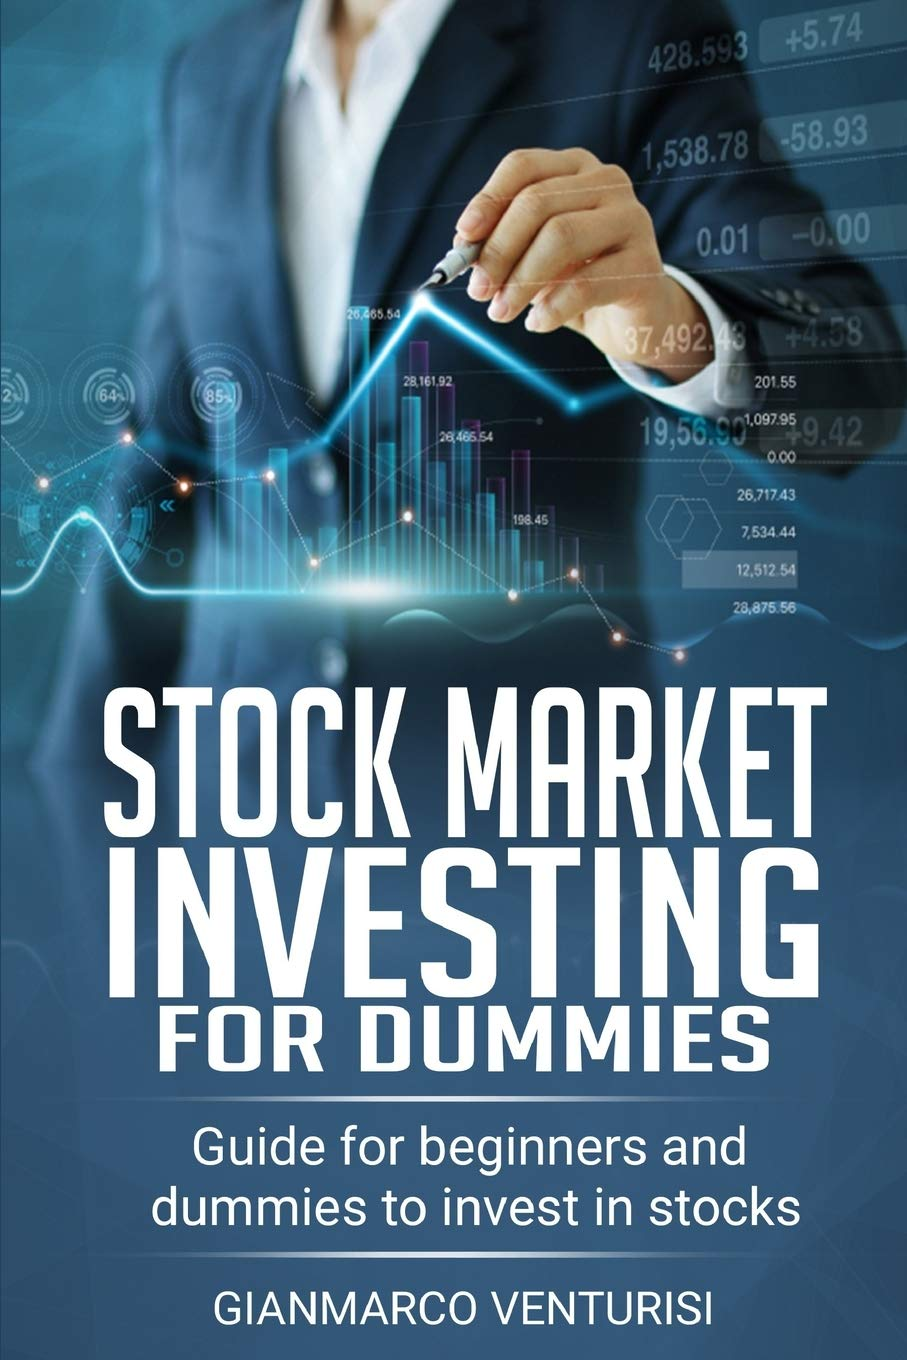 Stock Market Investing For Dummies: Guide for beginners and dummies to  invest in stocks: Venturisi, Gianmarco: 9781656291257: Amazon.com: Books